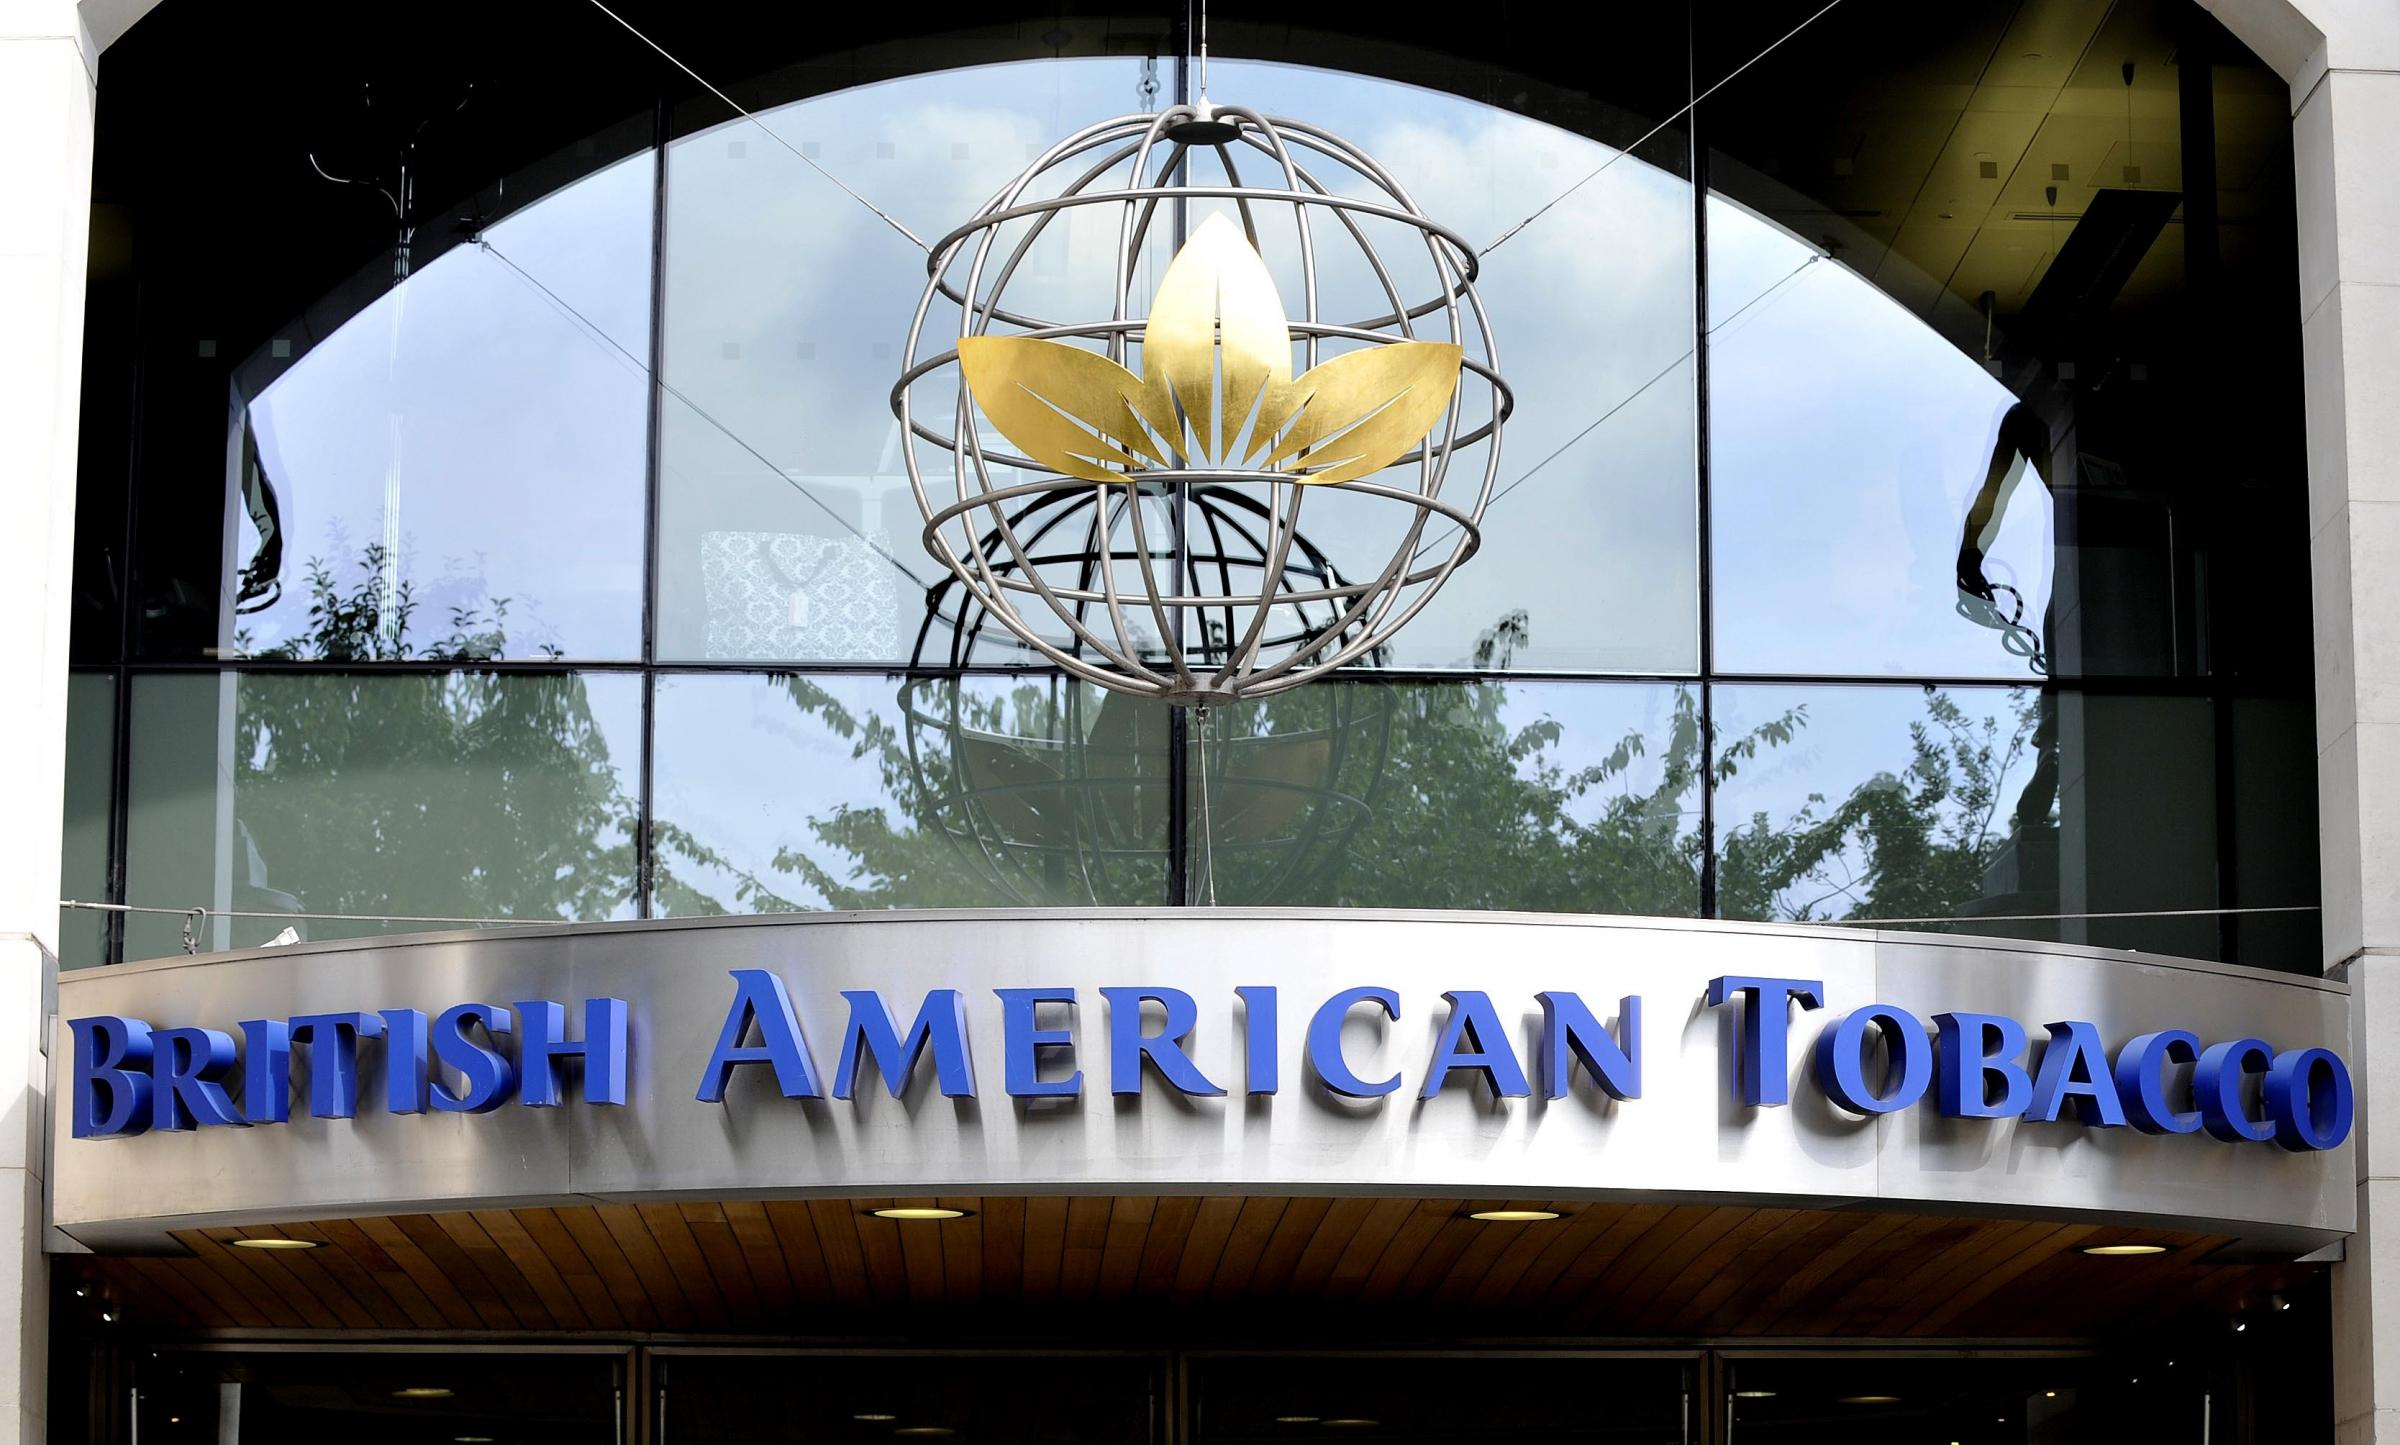 British American Tobacco agrees £40.8bn takeover of US rival (From Hampshire Chronicle)